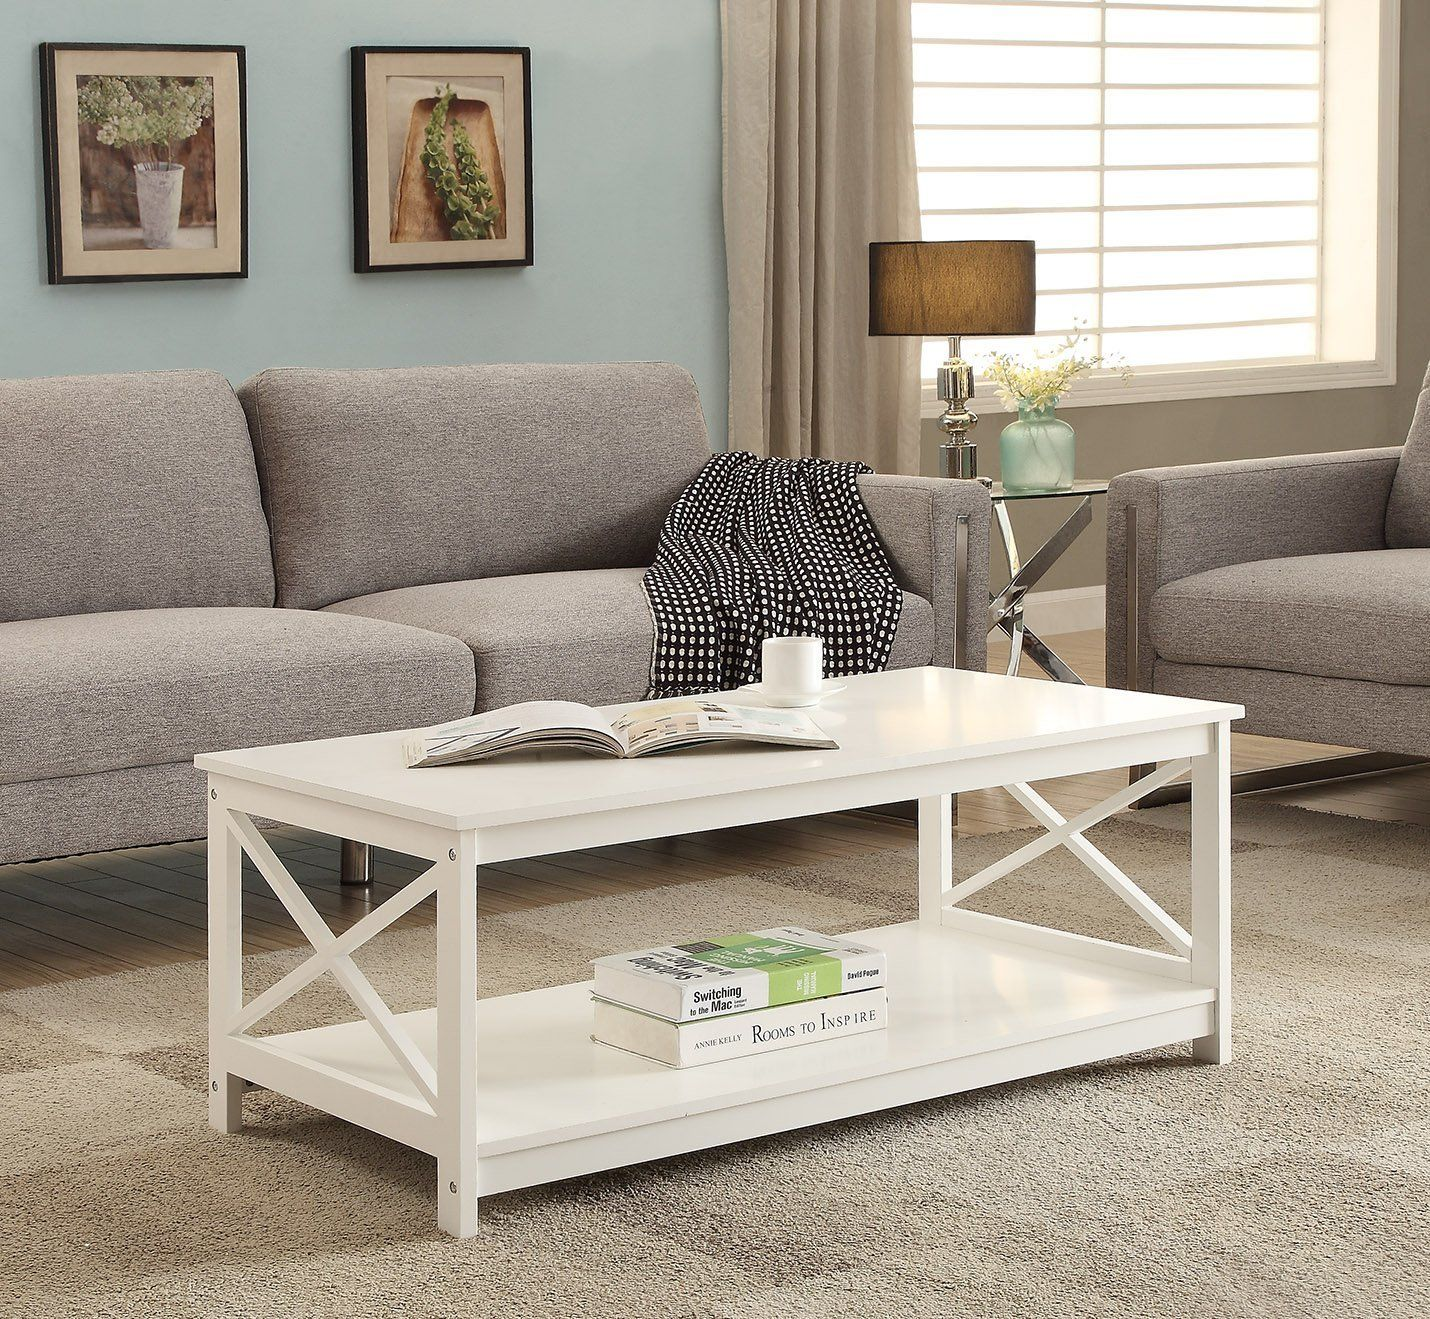 72 00 amazonsmile white finish x design wooden cocktail coffee table shelf kitchen dining